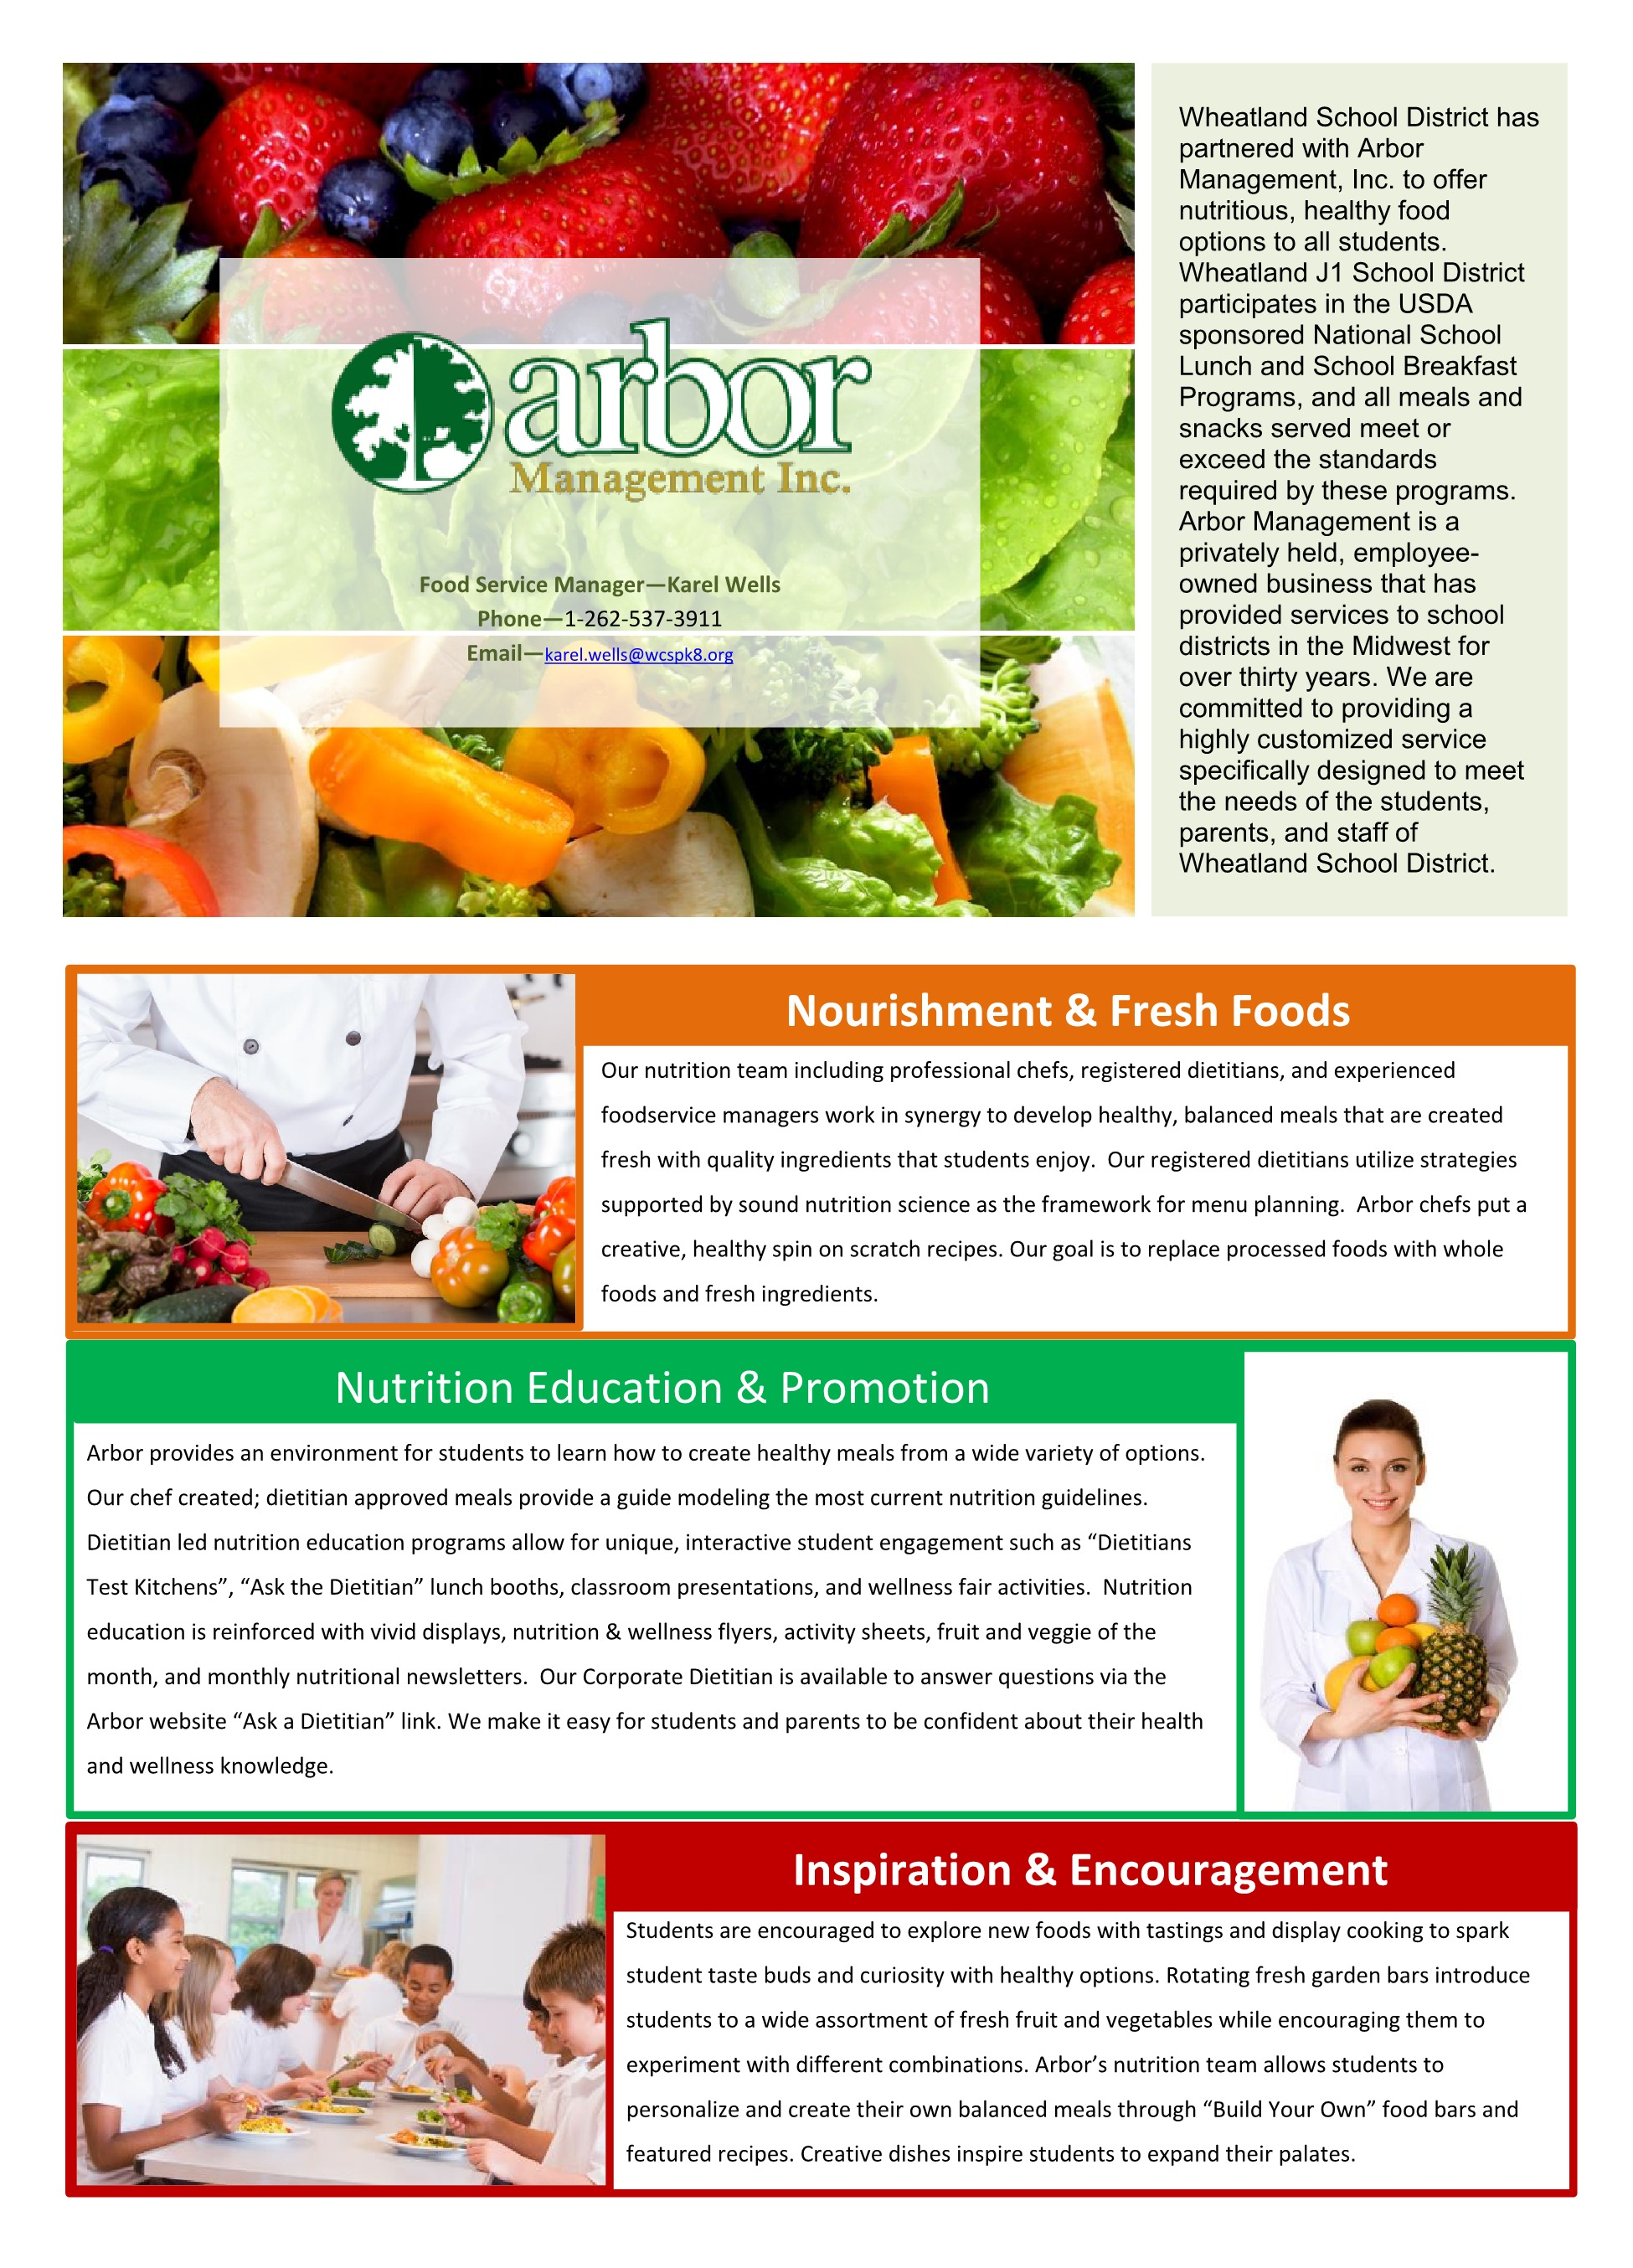 Wheatland School District has partnered with Arbor Management, Inc. to offer nutritious, healthy food options to all students. Wheatland J1 School District participates in the USDA sponsored National School Lunch and School Breakfast Programs, and all meals and snacks served meet or exceed the standards required by these programs. Arbor Management is a privately held, employee-owned business that has provided services to school districts in the Midwest for over thirty years. We are committed to providing a highly customized service specifically designed to meet the needs of the students, parents, and staff of Wheatland School District.